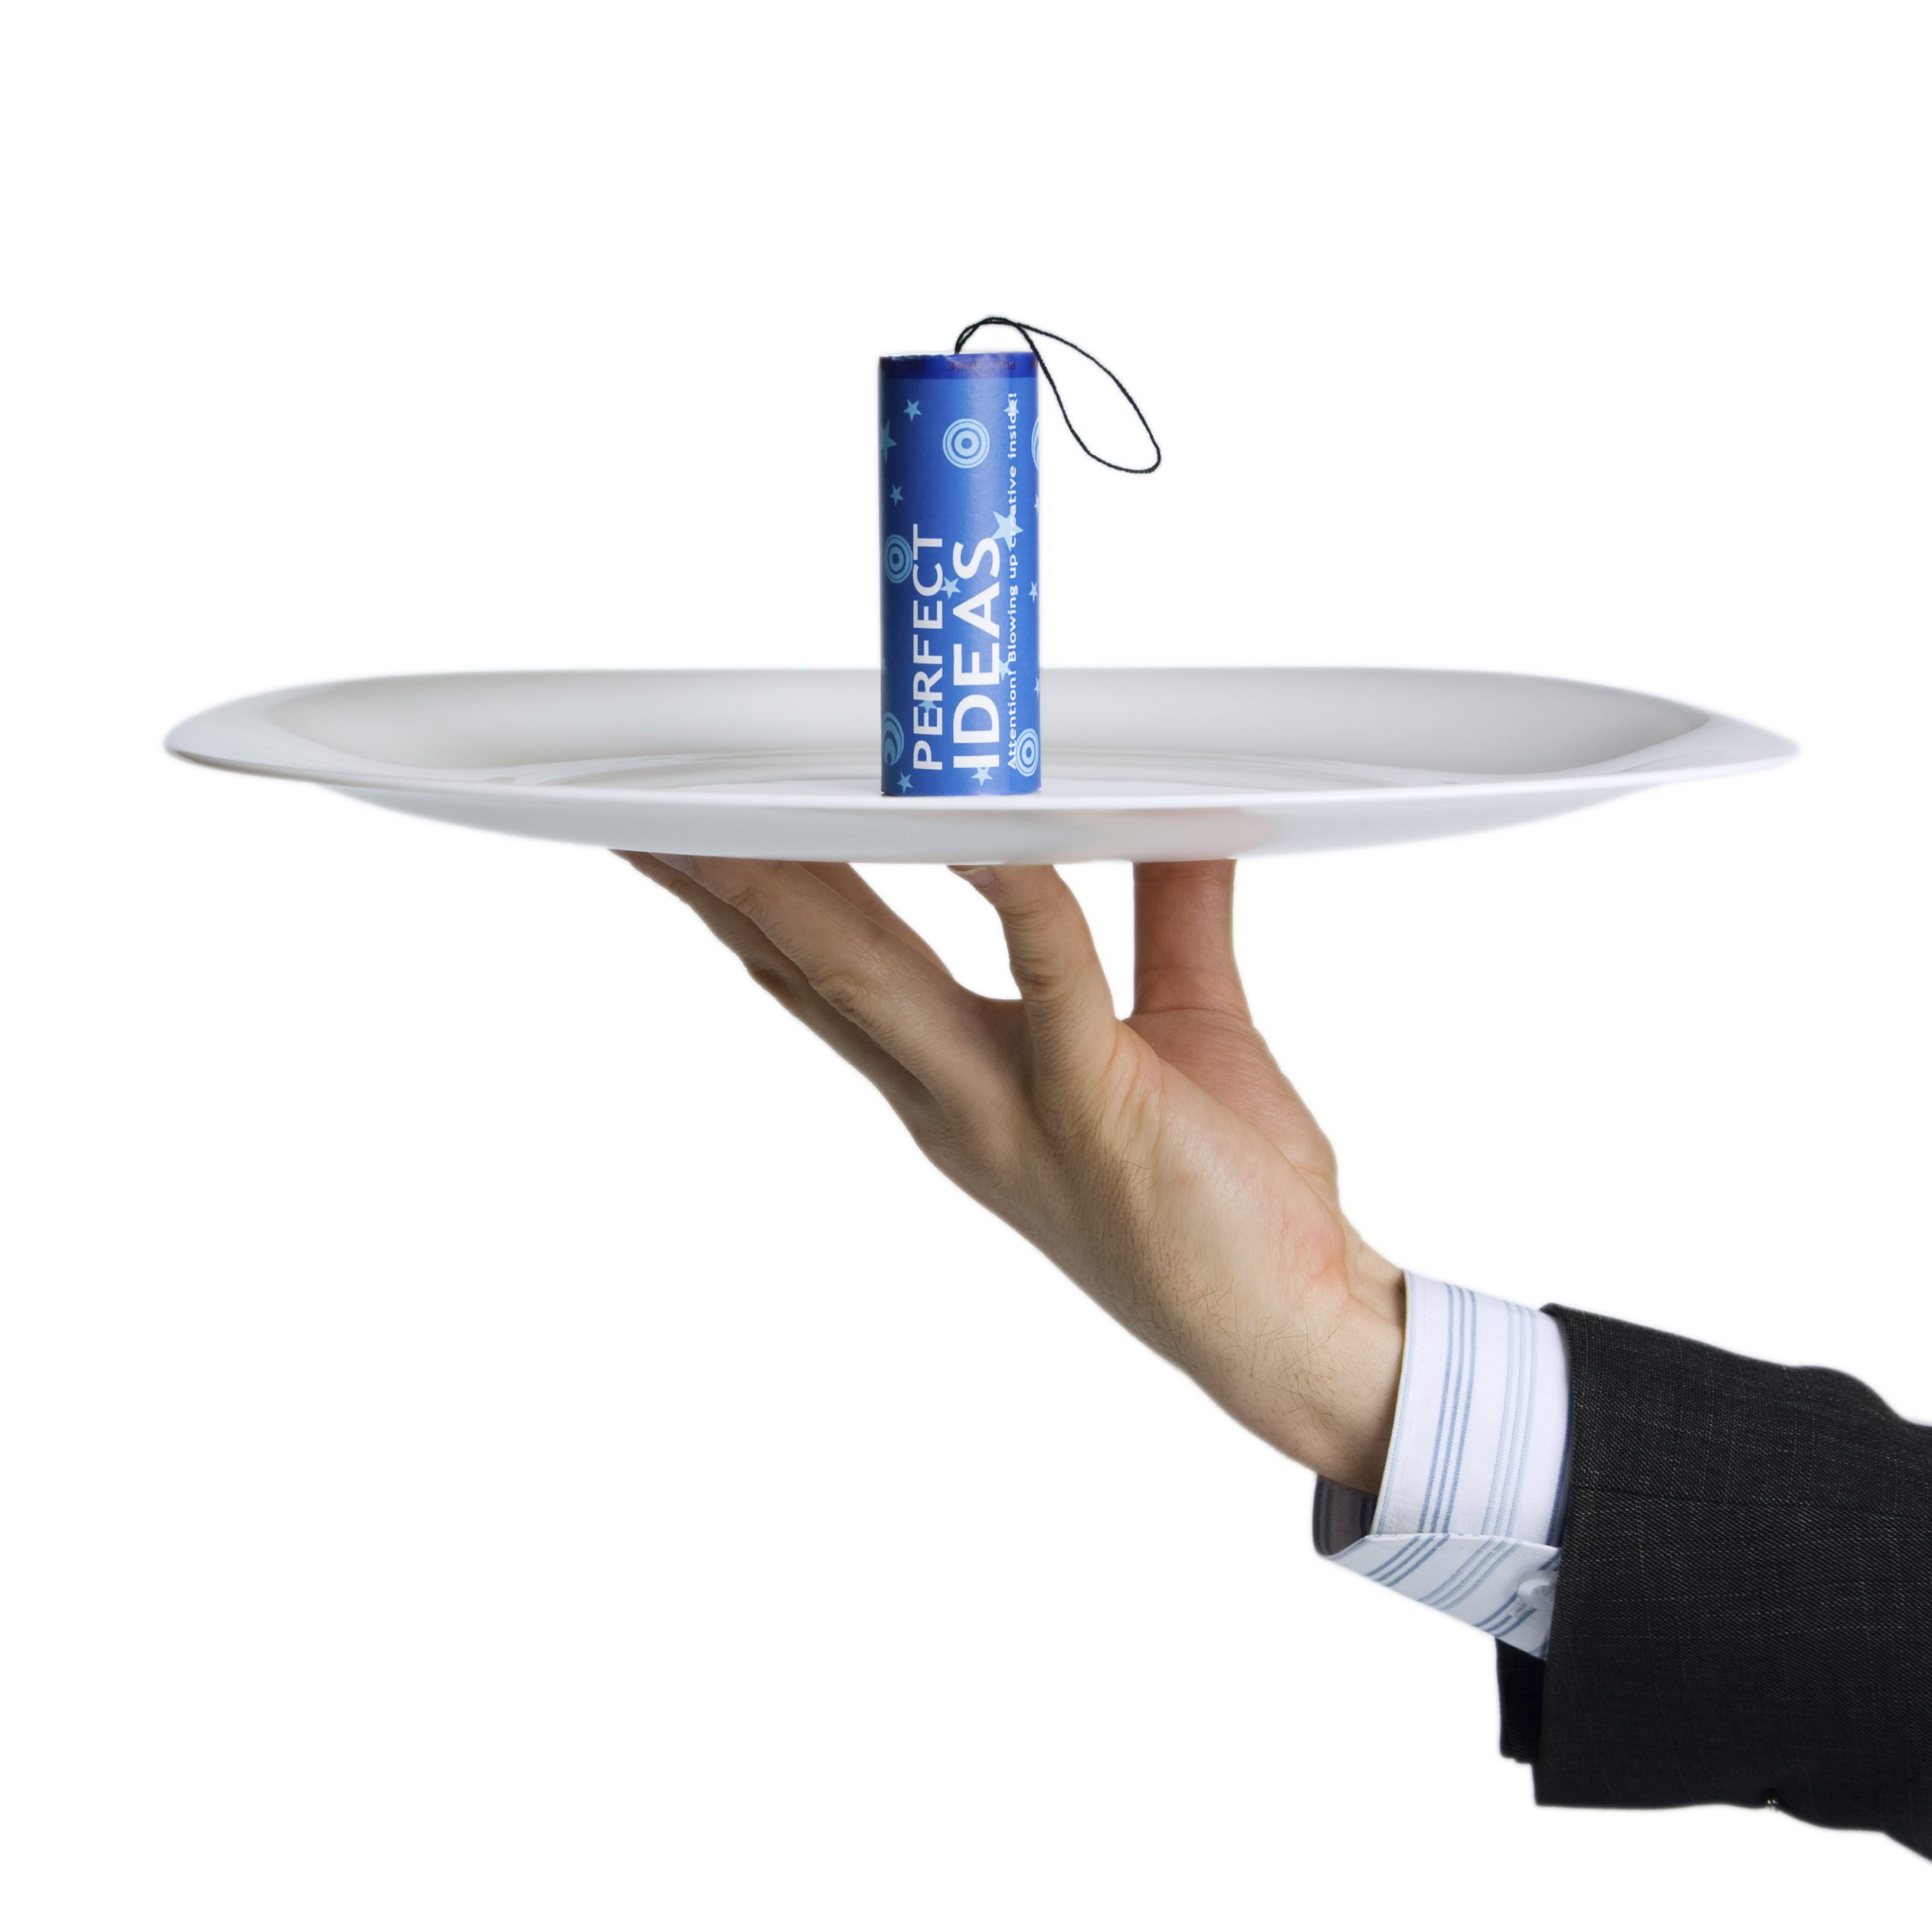 Conceptual firework unit with perfect ideas on plate keeping by waiter`s hand.